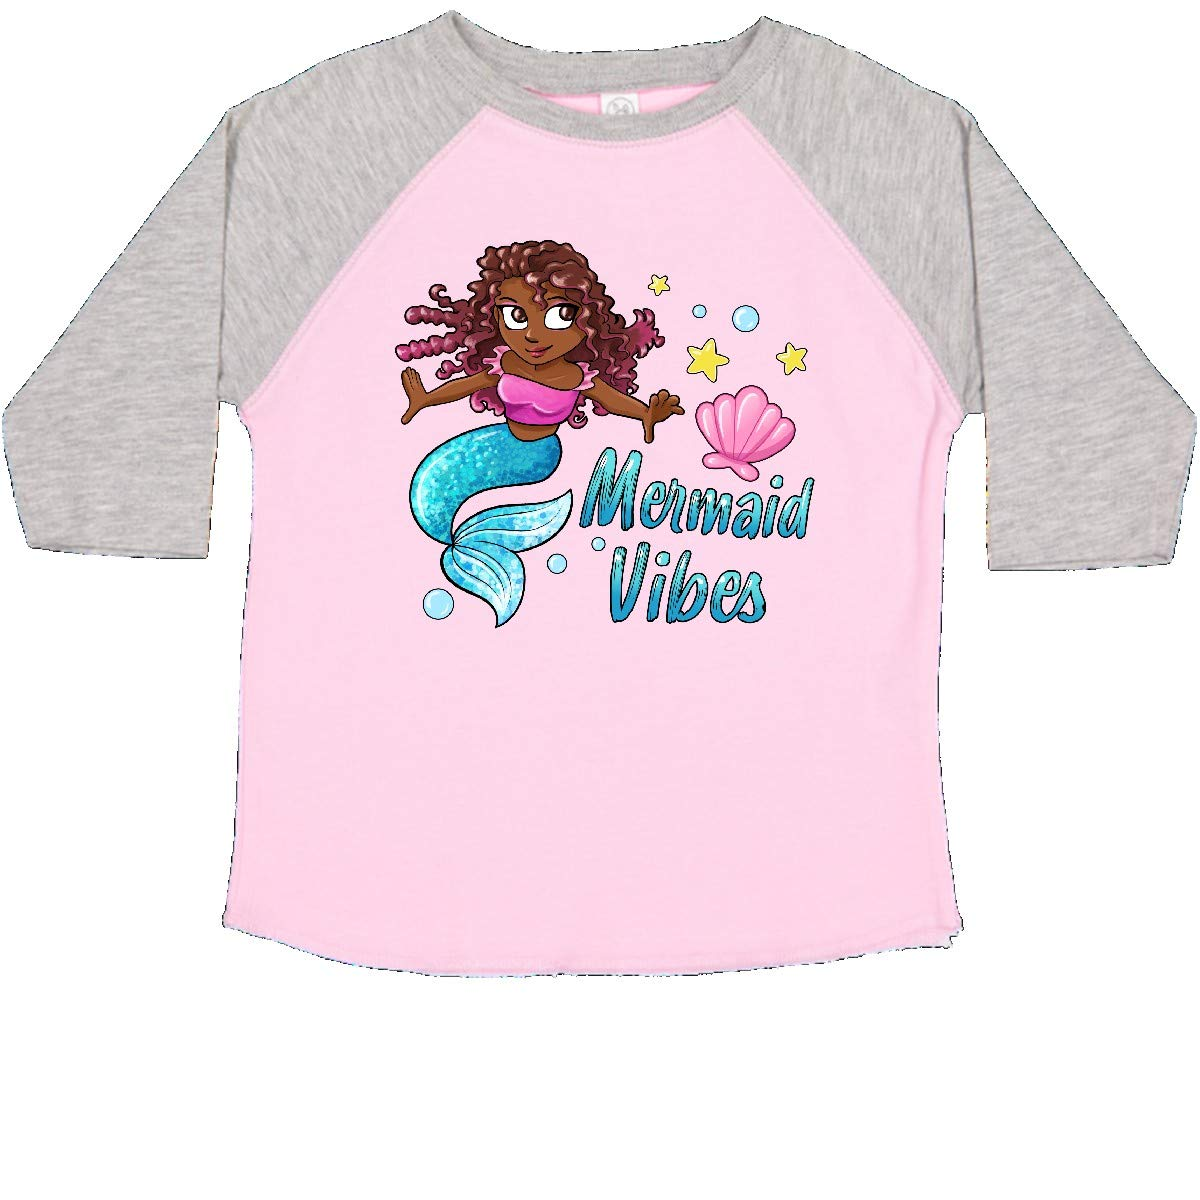 Cute Mermaid with Blue Tail Toddler T-Shirt inktastic Mermaid Vibes